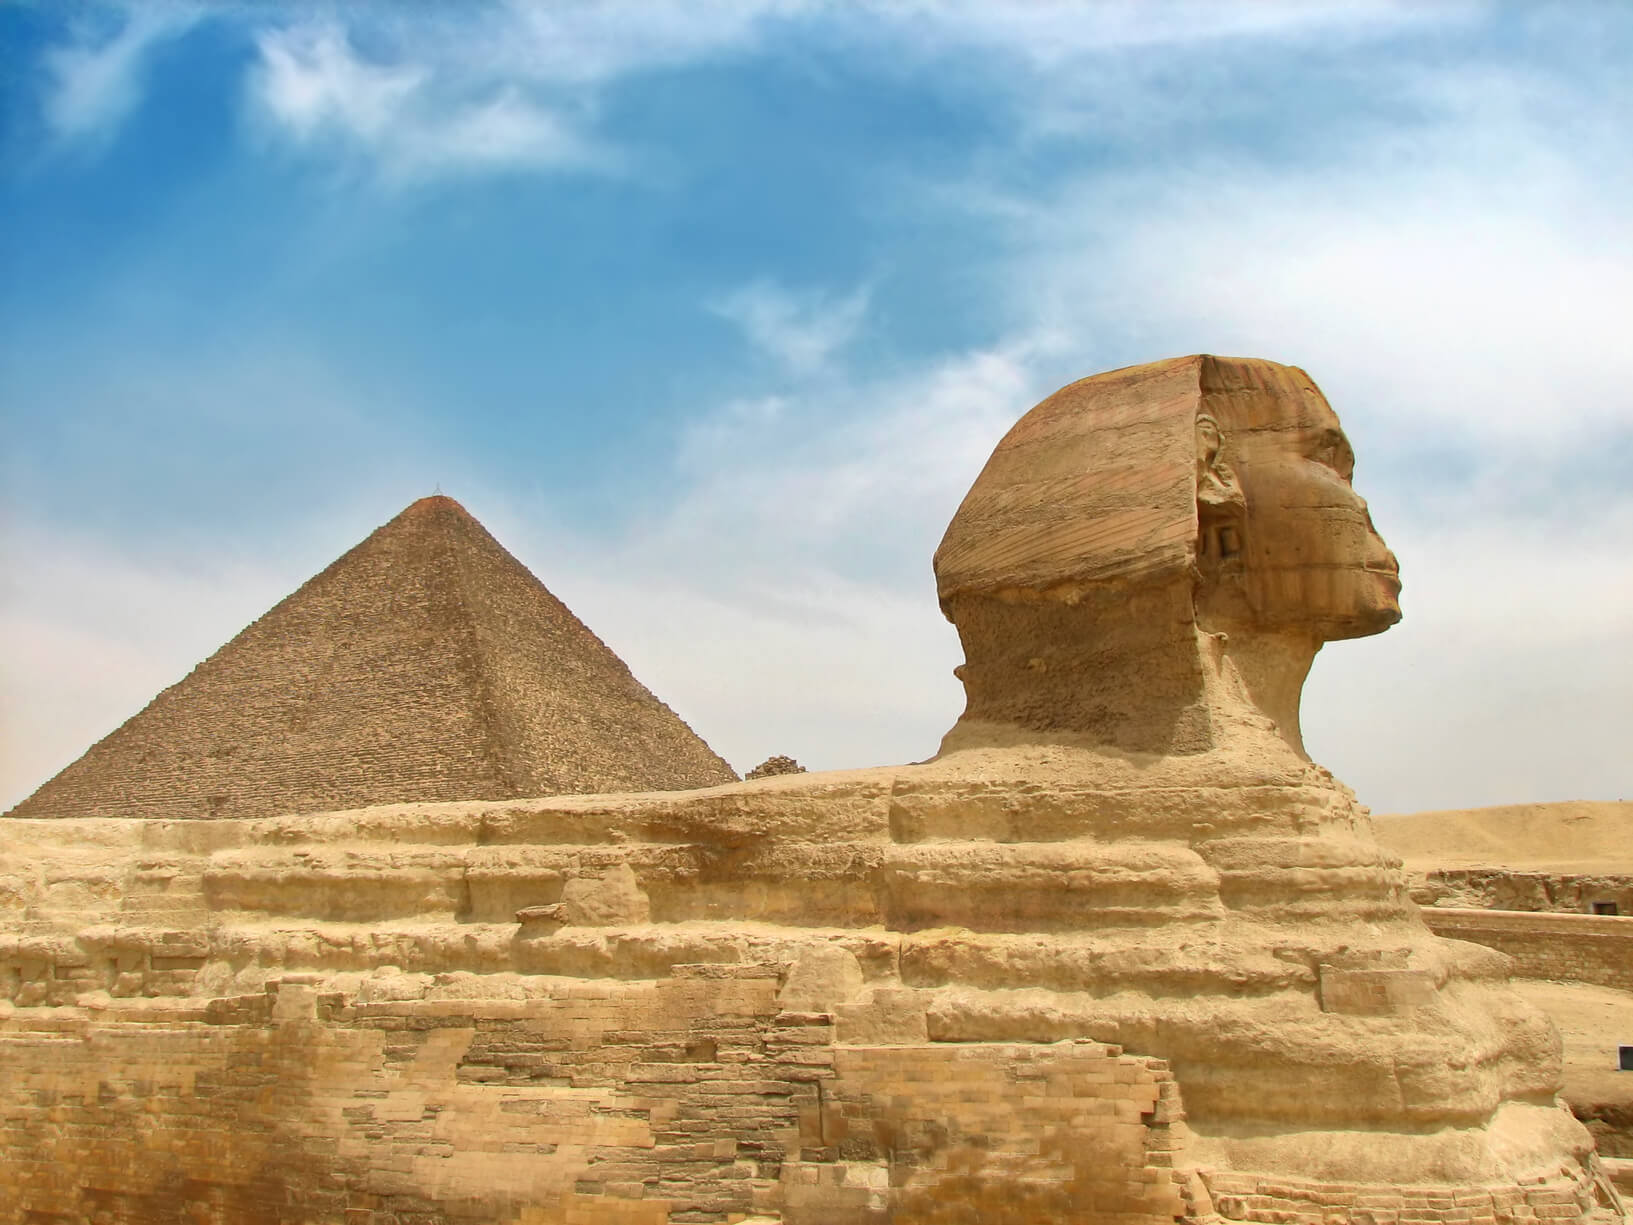 Non-stop from Kiev, Ukraine to Cairo, Egypt for only €33 one-way